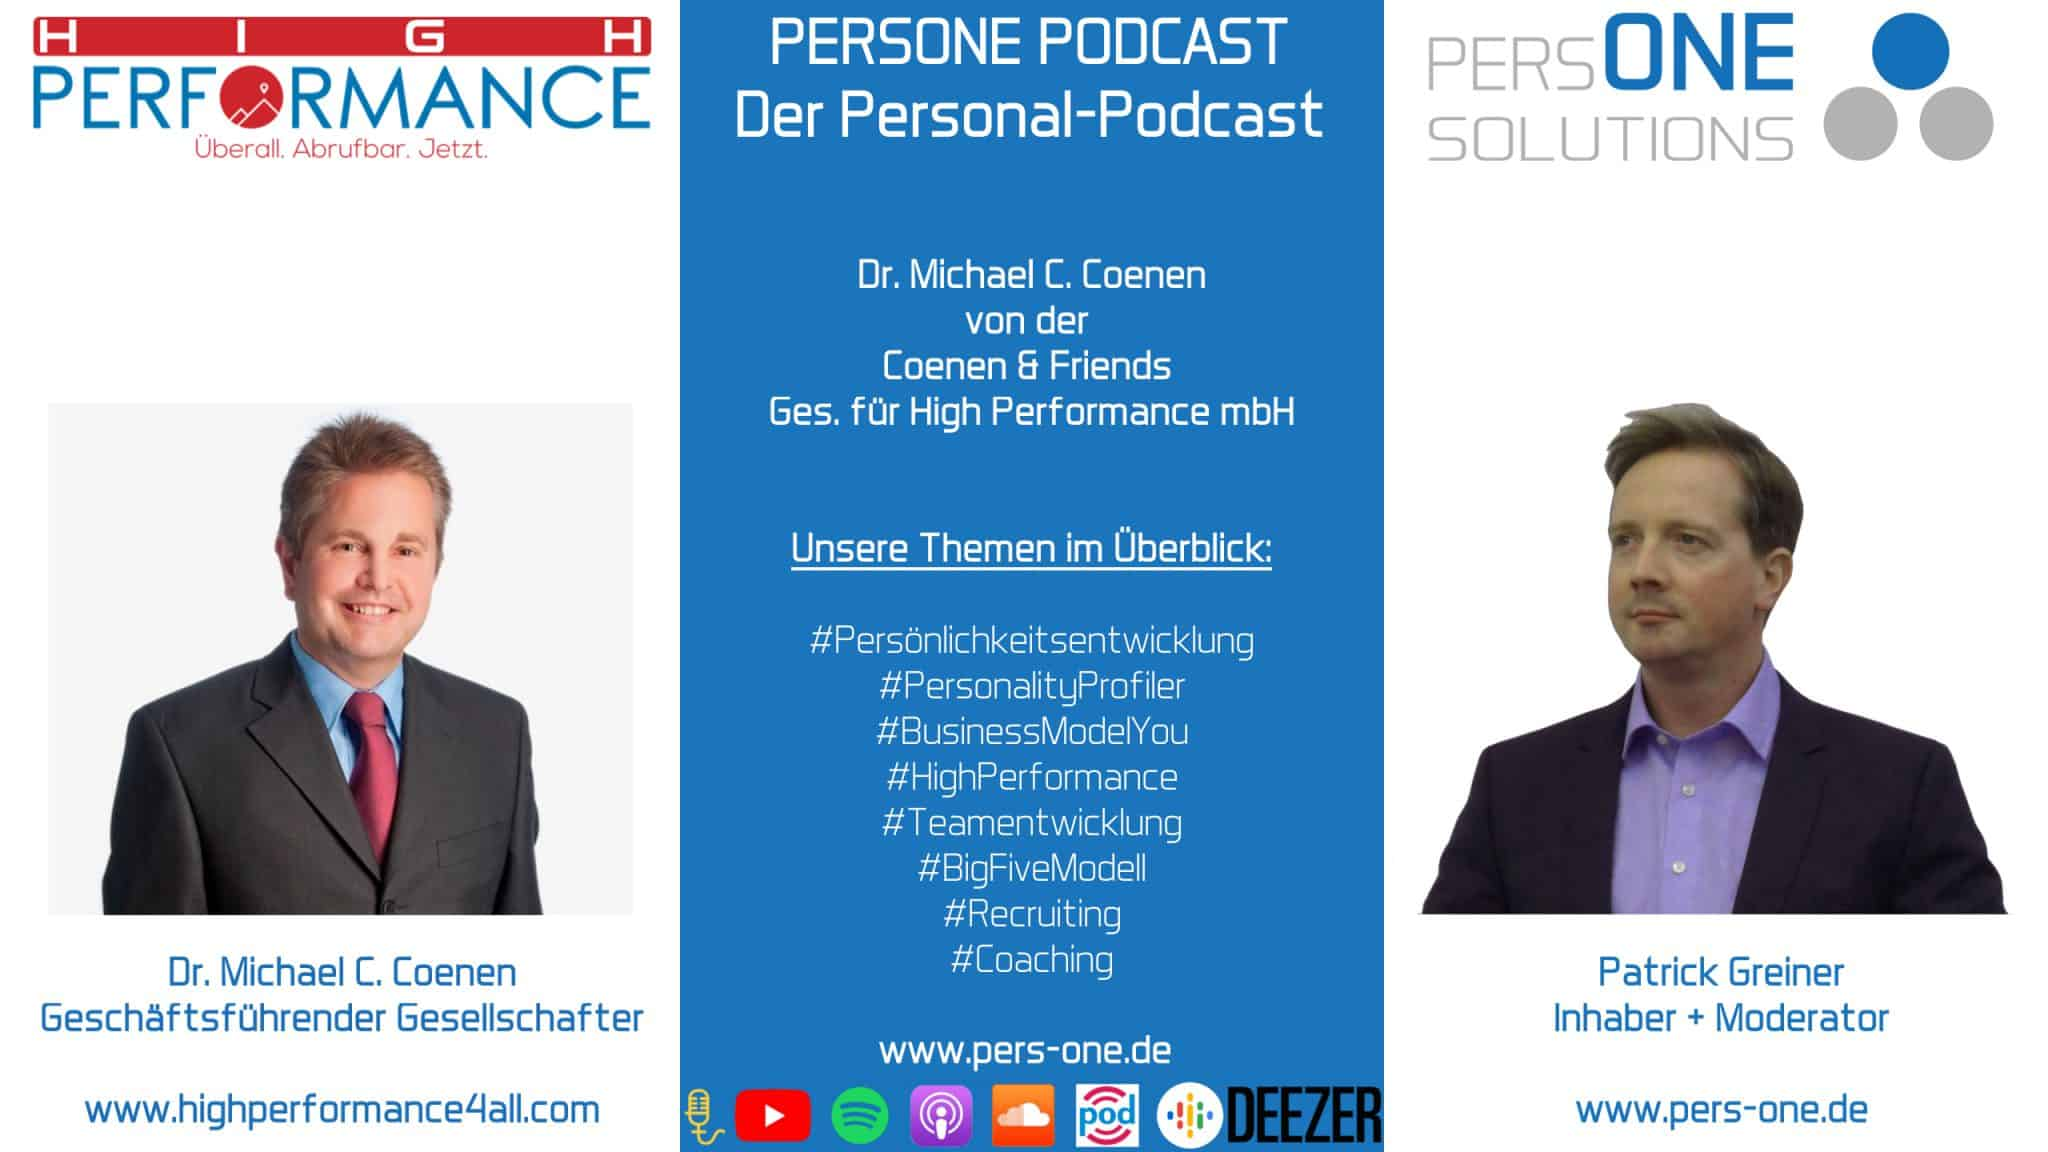 Dr. Michael C. Coenen | PERSONE PODCAST - Der Personal-Podcast